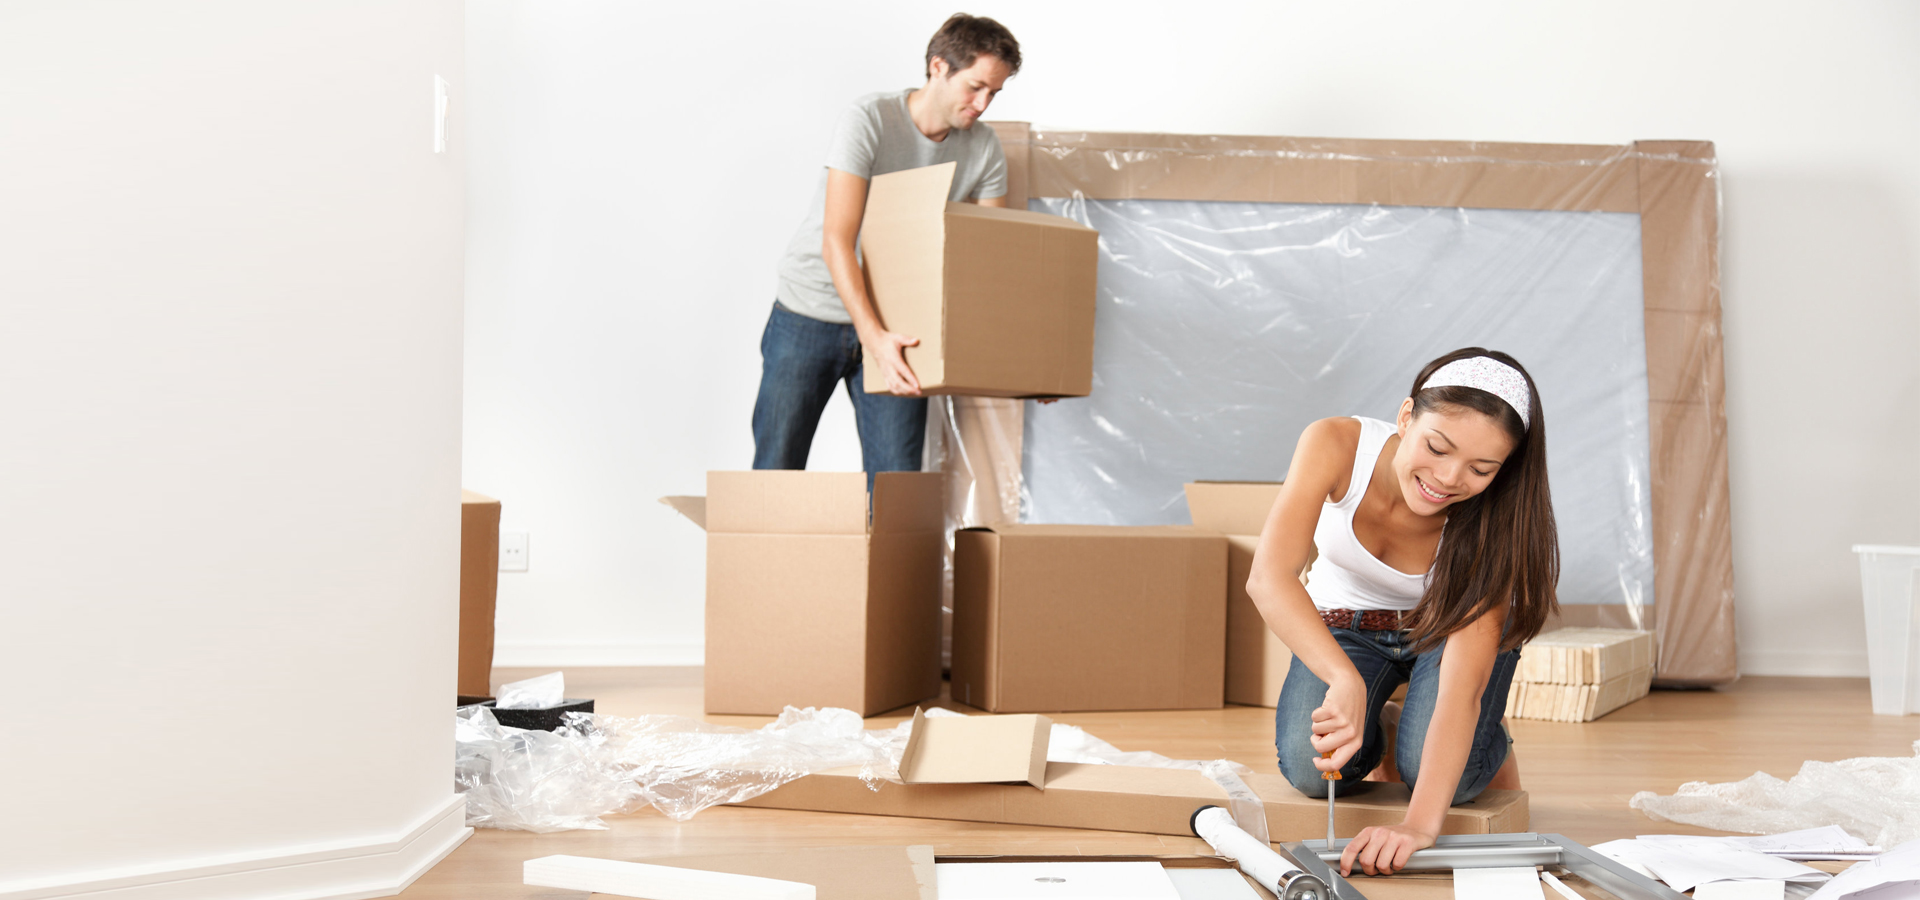 How to Pack Your Furniture While Home Shifting?